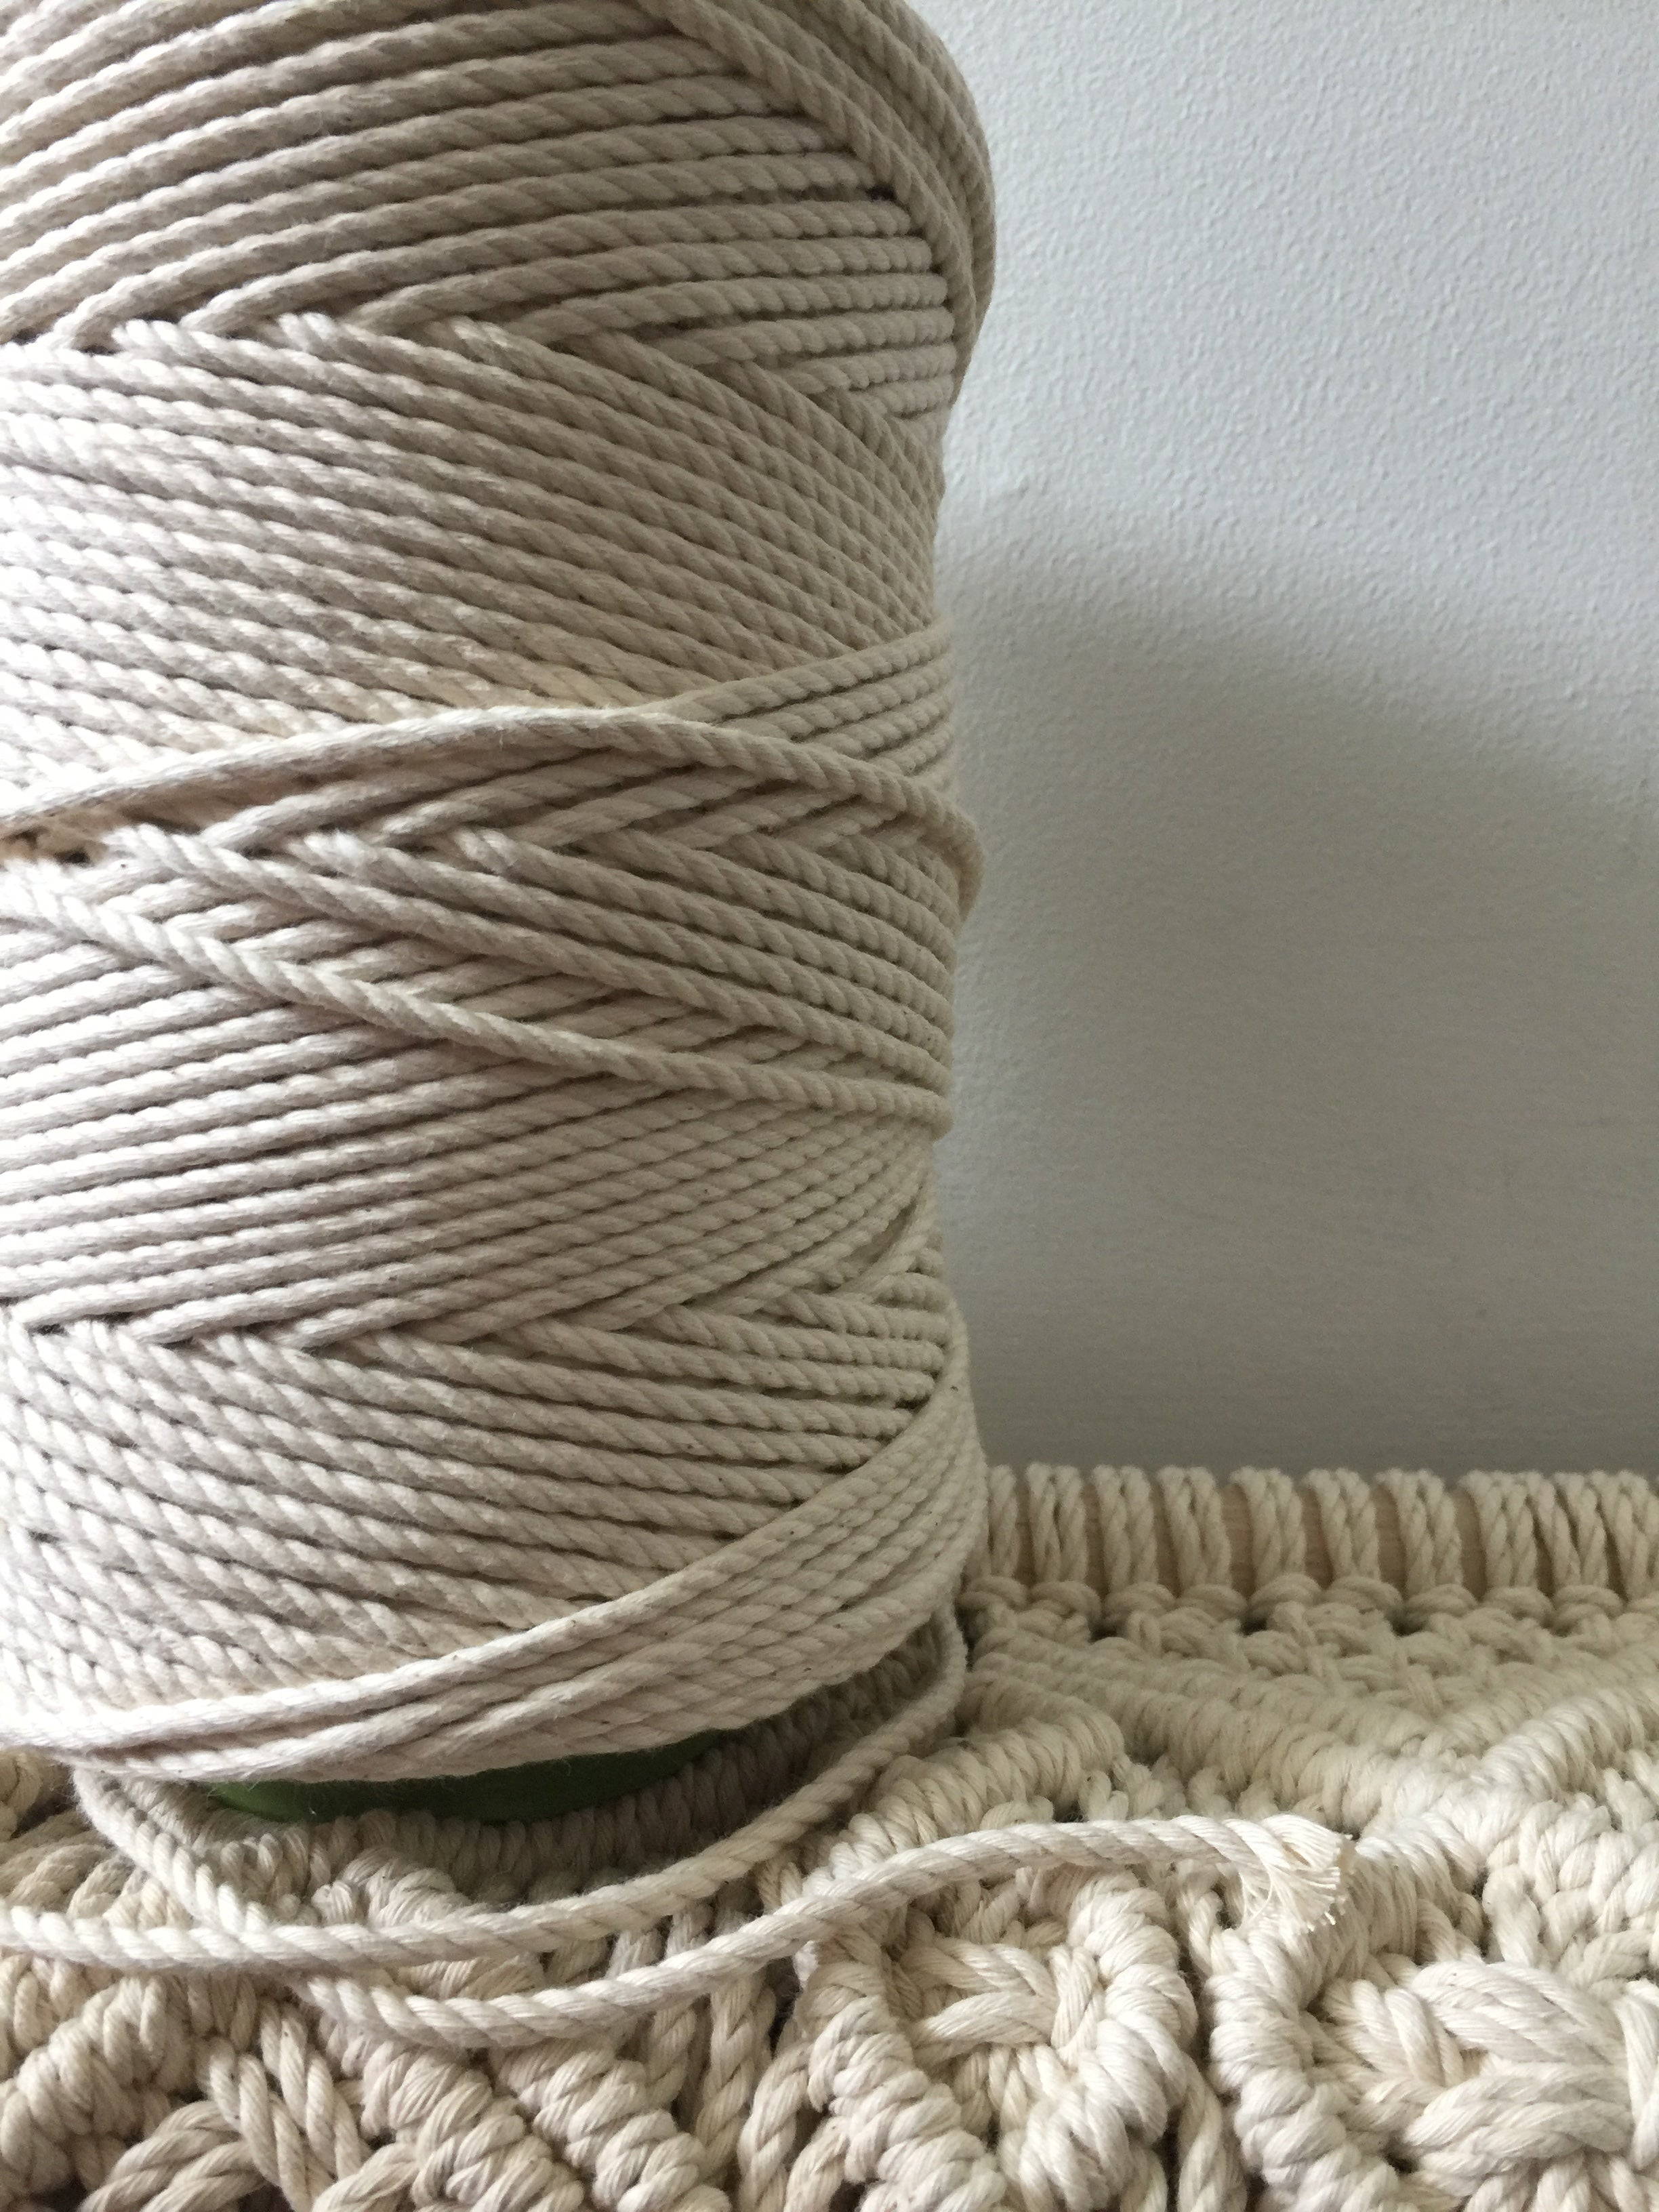 4mm 3ply Rope - Natural - 1kg